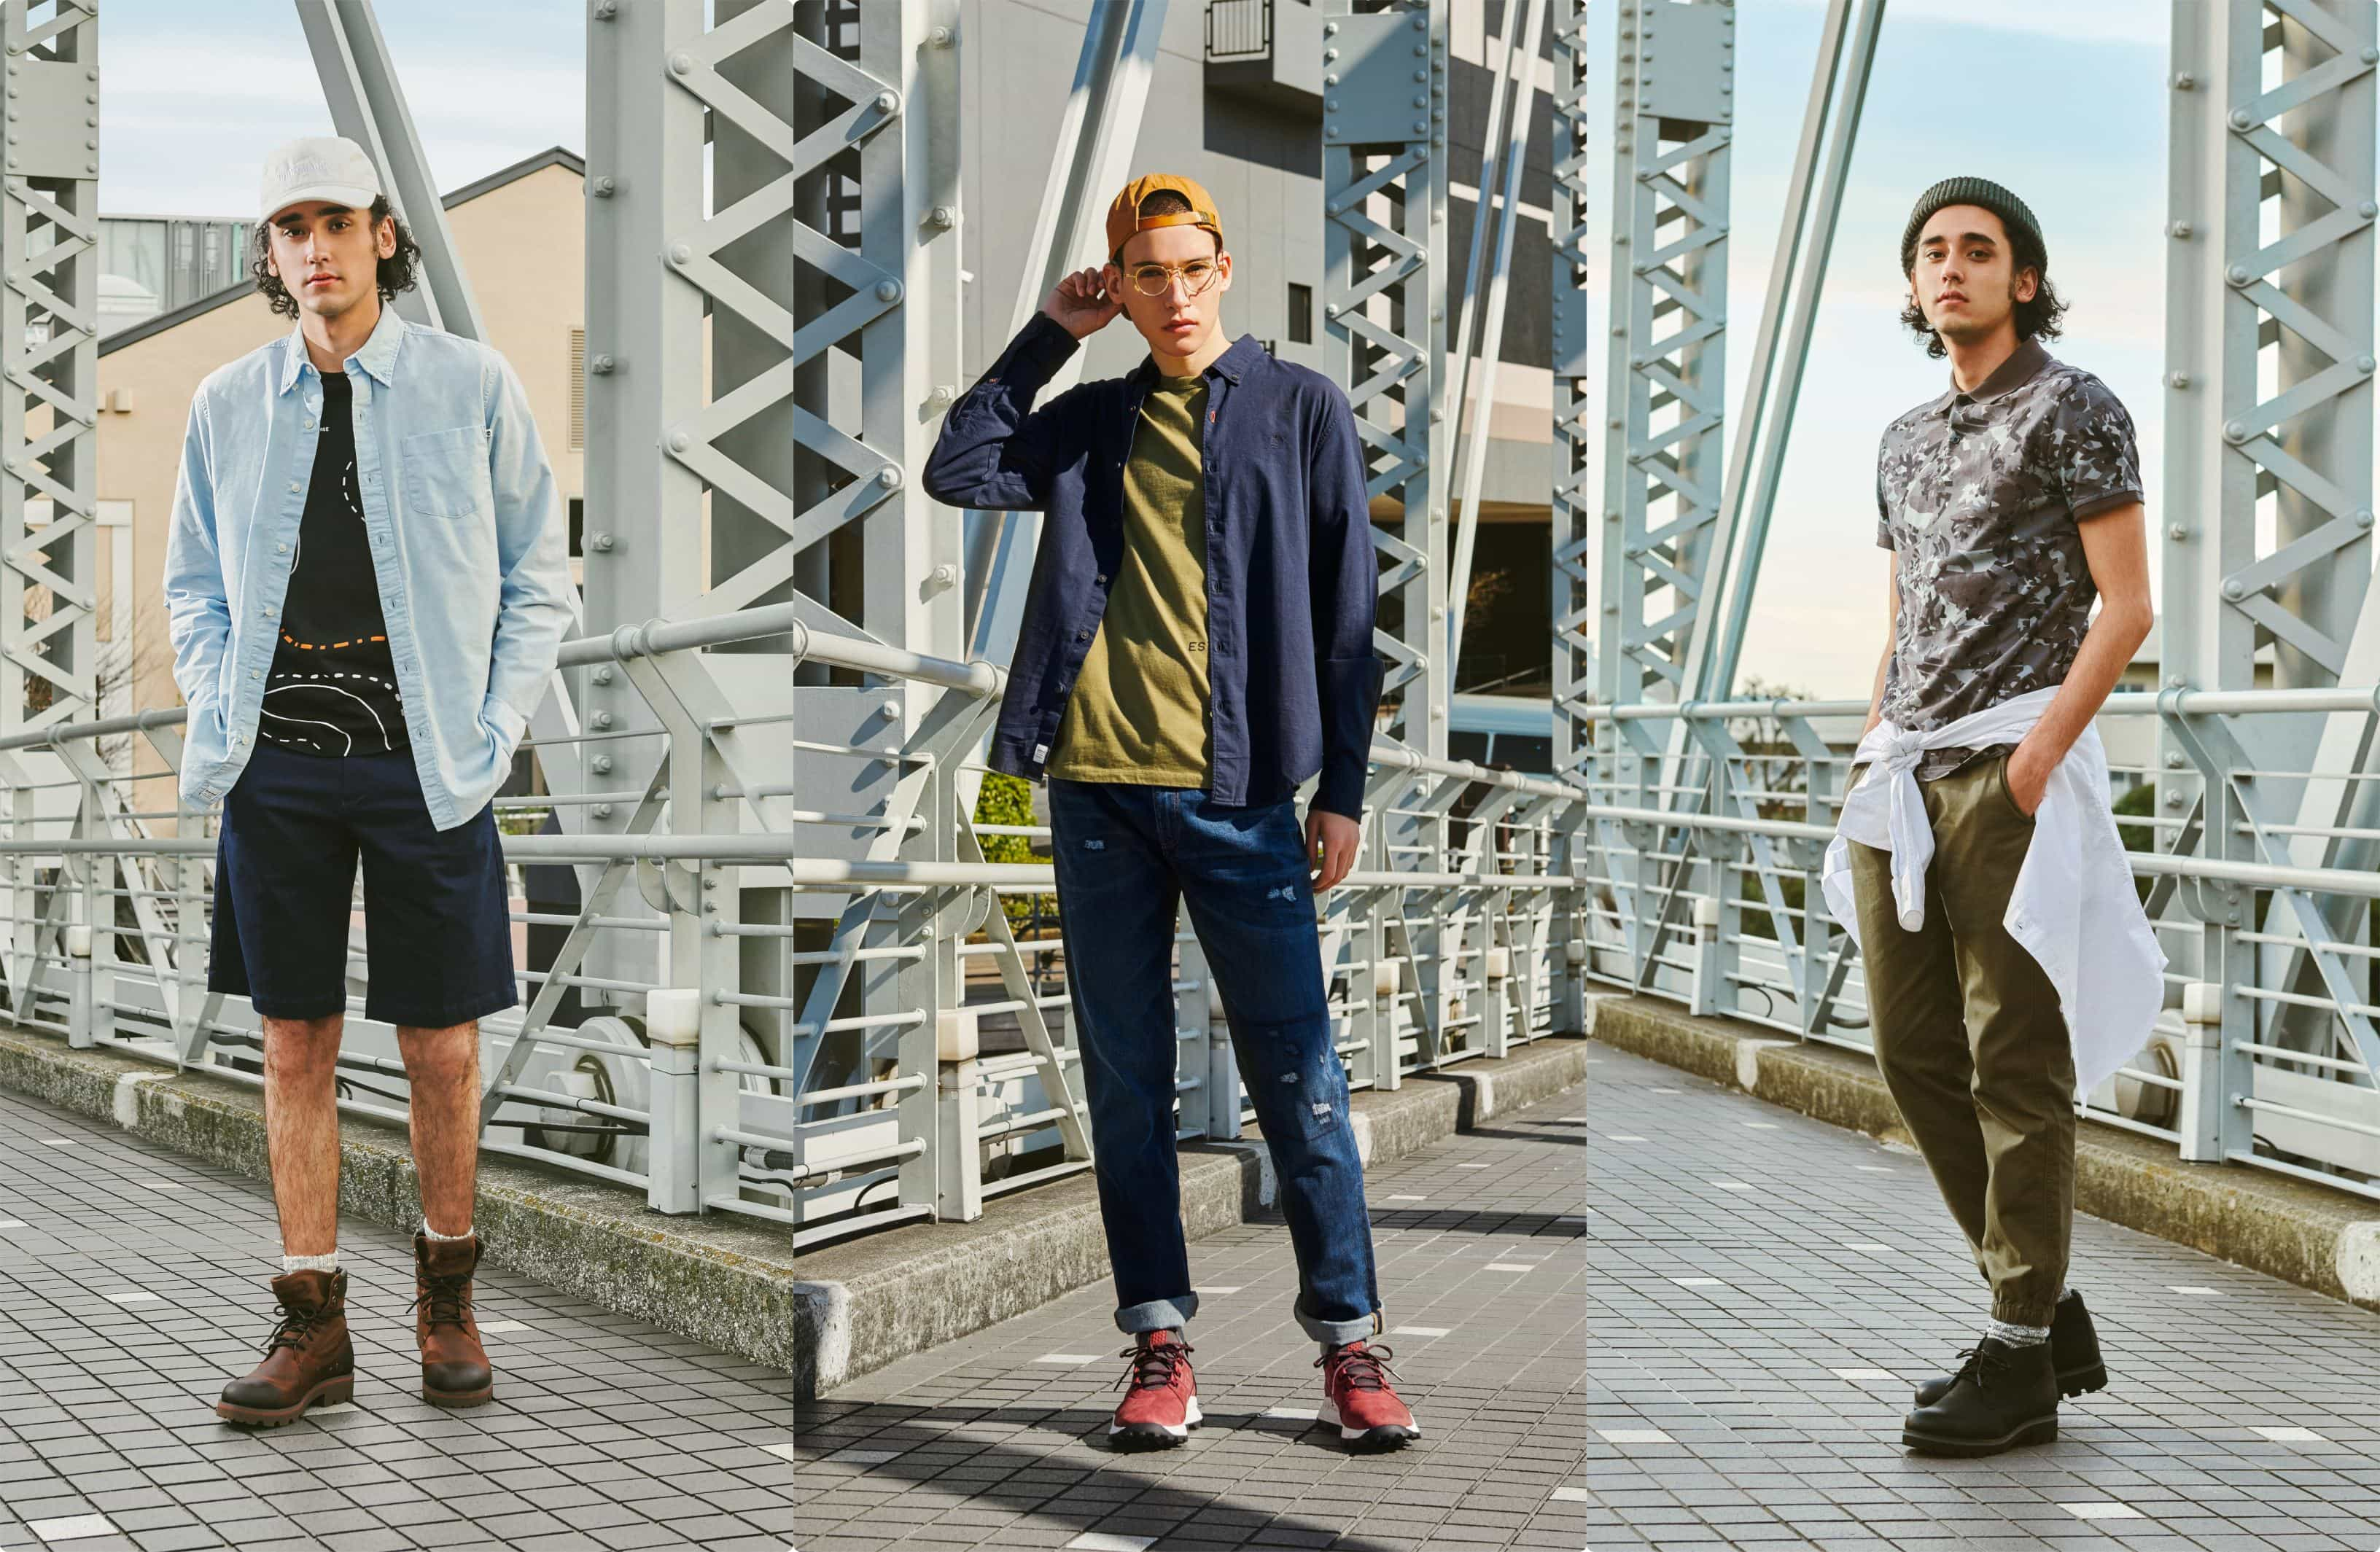 Timberland's Brooklyn Reboot Collection is your ticket to becoming a natural born hero